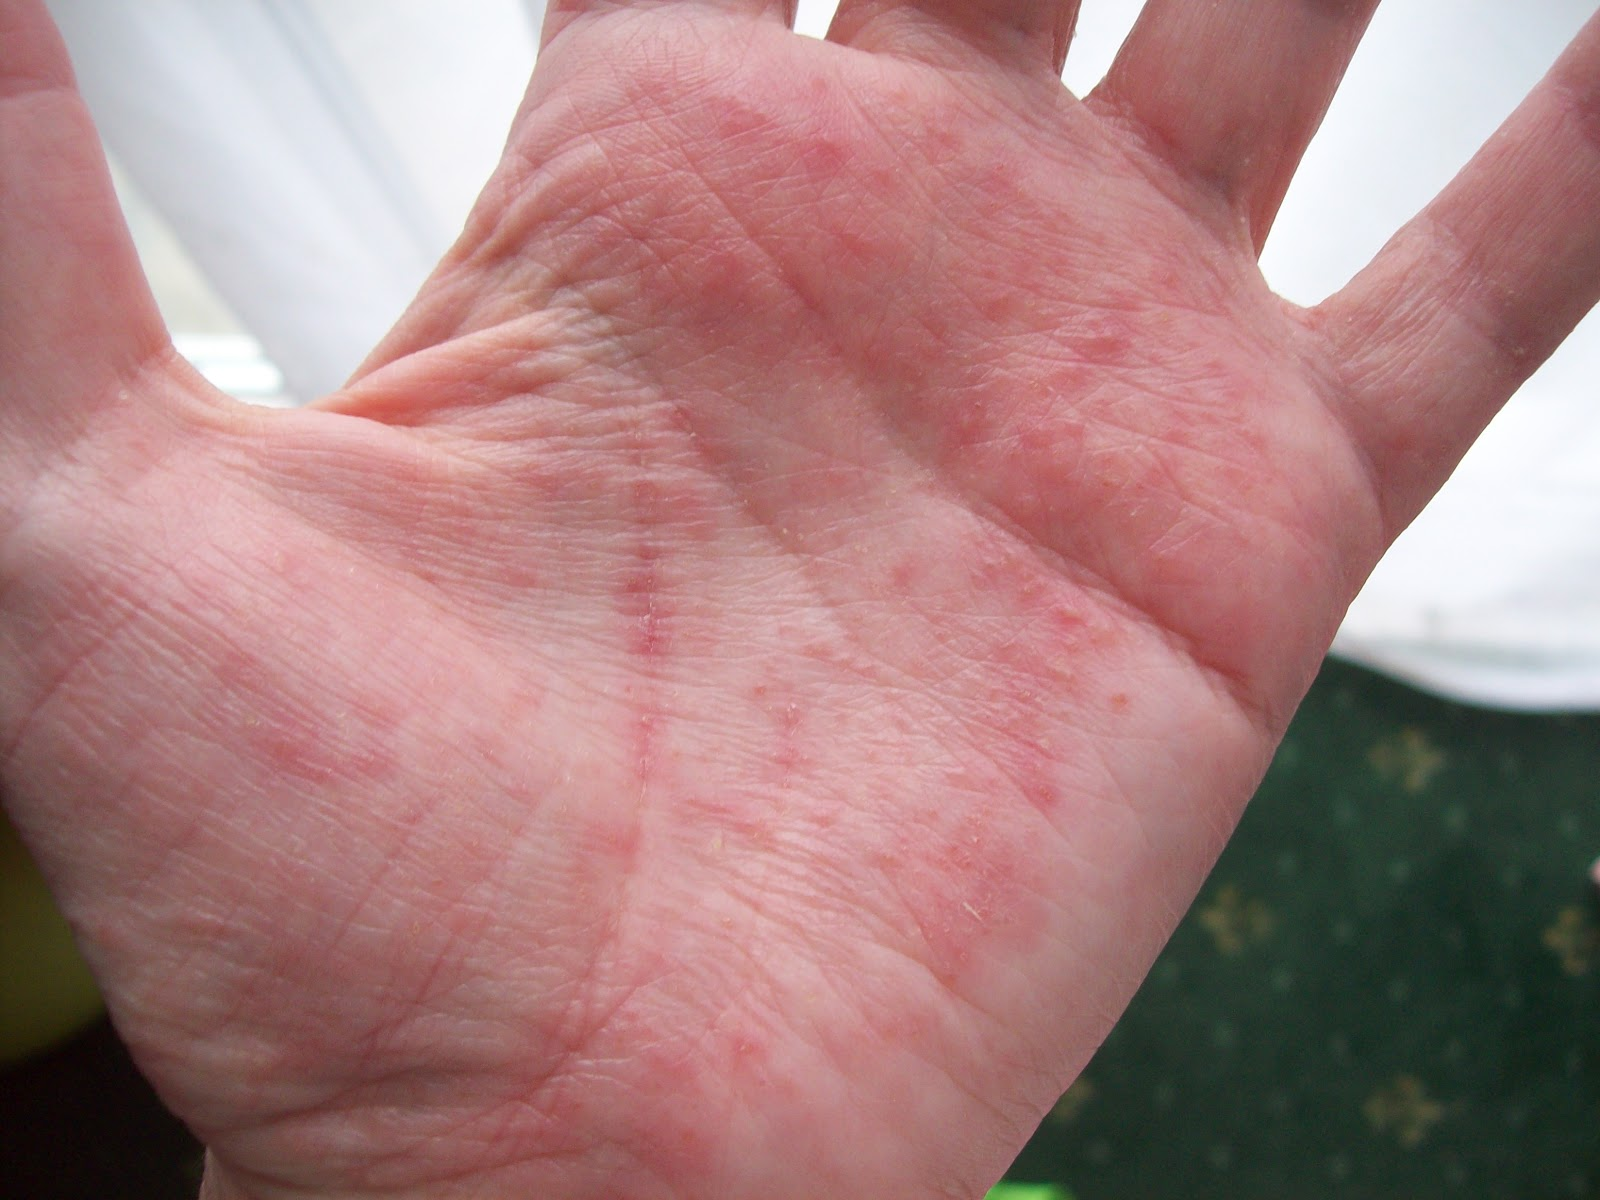 itchy bumps on hands and arms - Dermatology - MedHelp